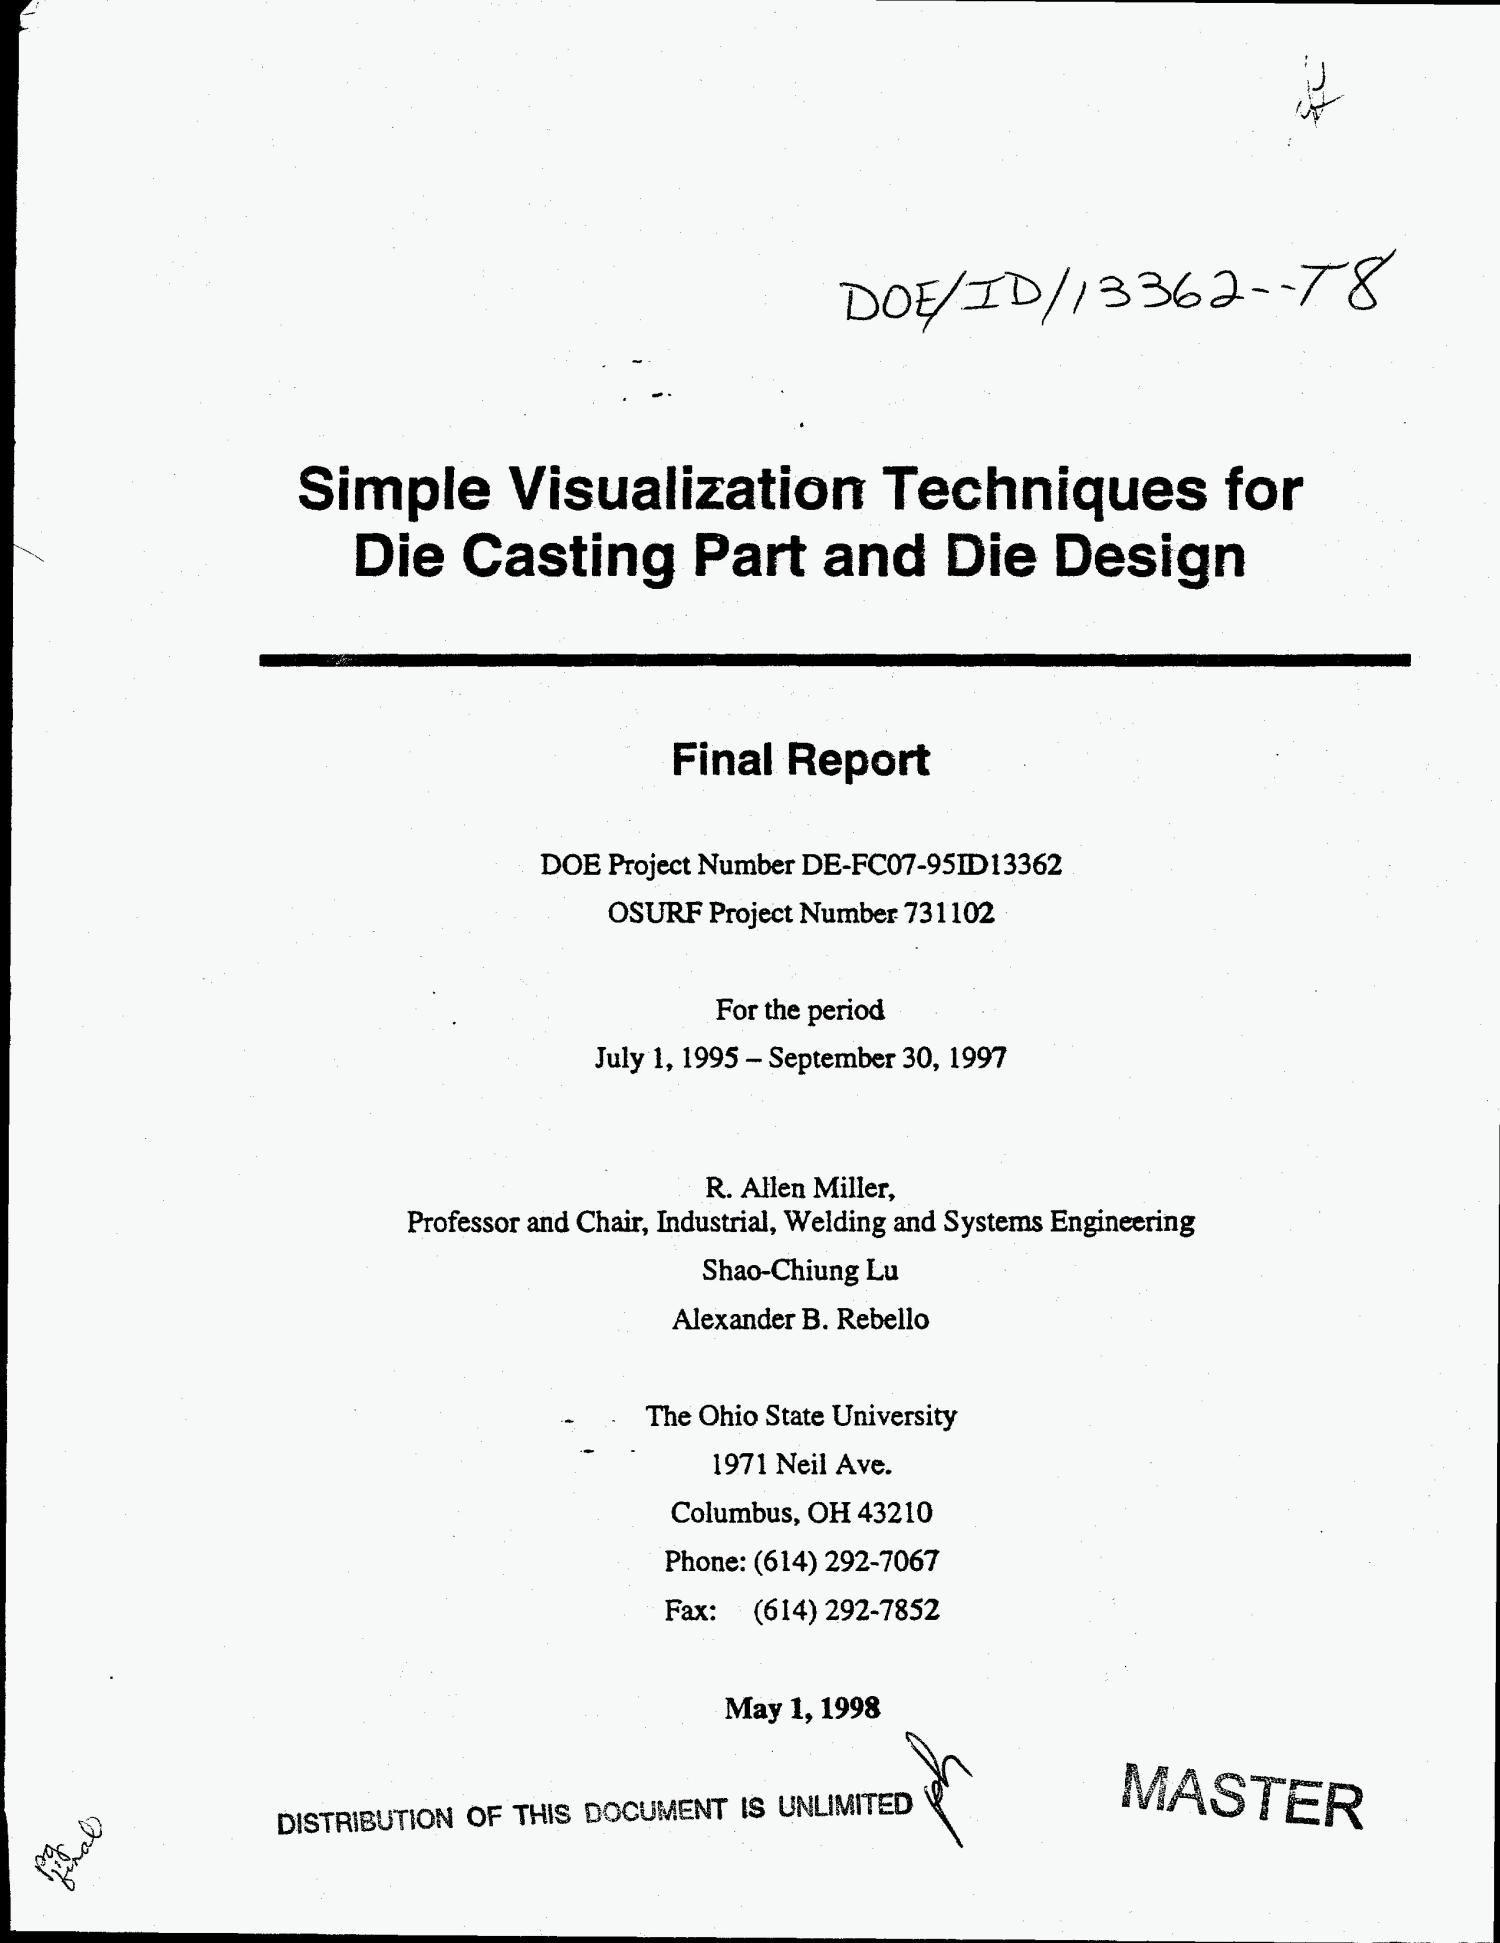 Simple visualization techniques for die casting part and die design. Final report, July 1, 1995--September 30, 1997                                                                                                      [Sequence #]: 1 of 220